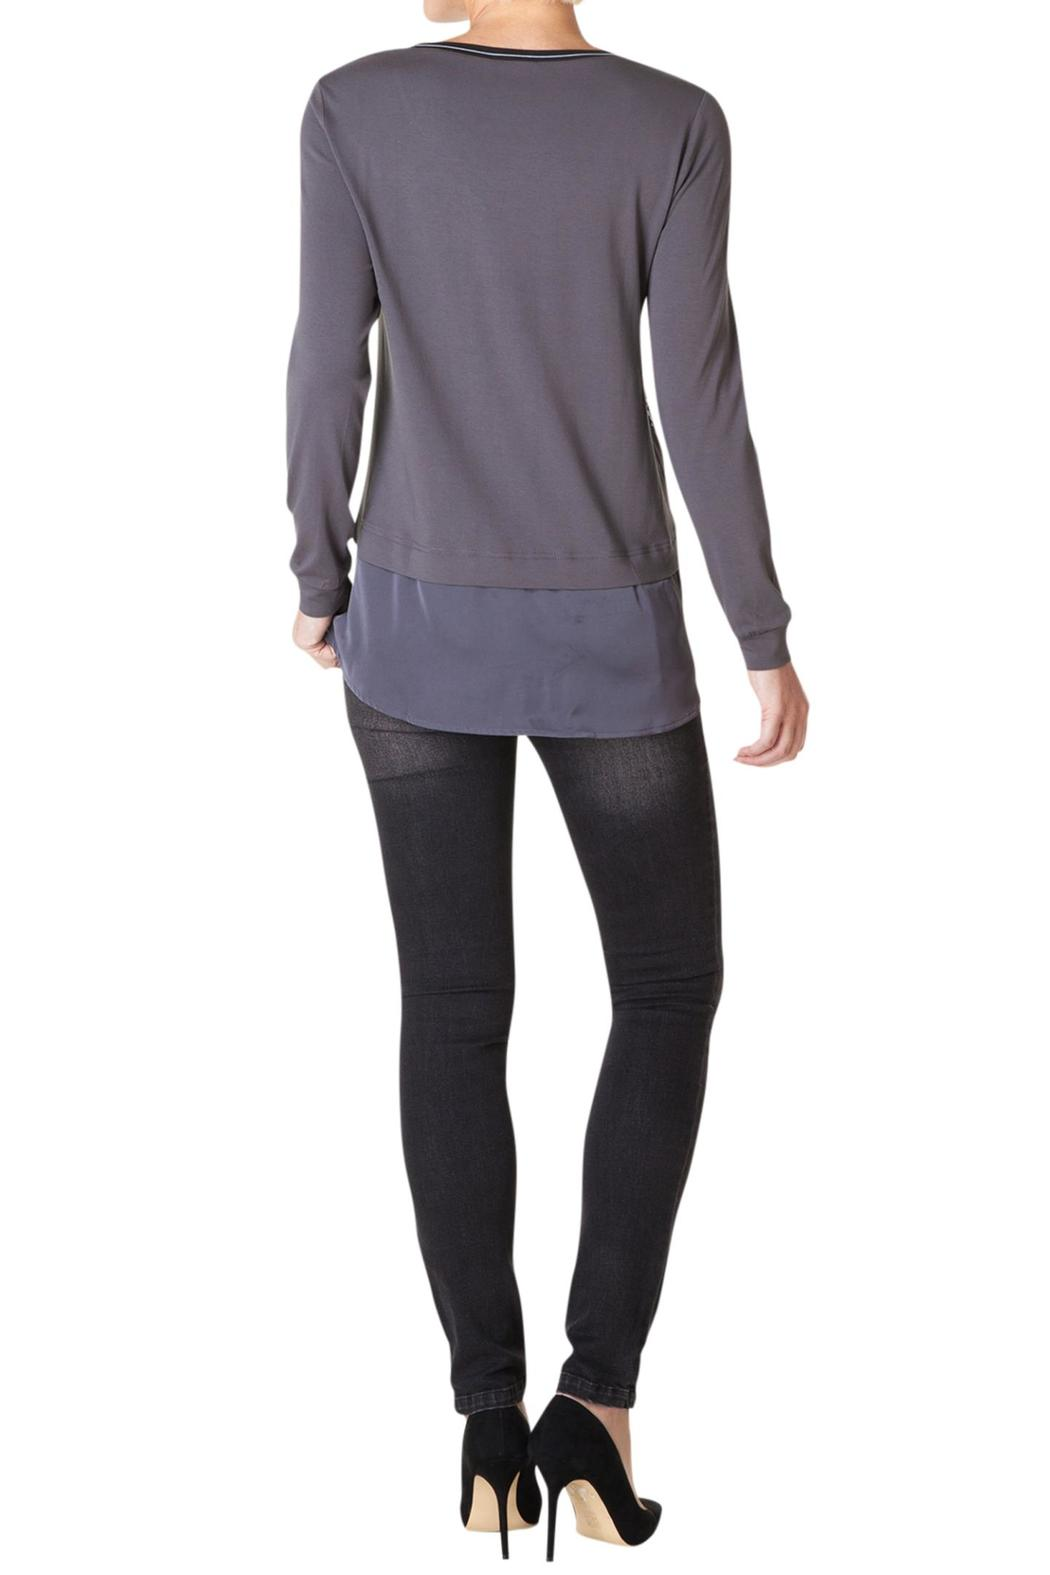 Yest Grey Multicolor Top - Front Full Image